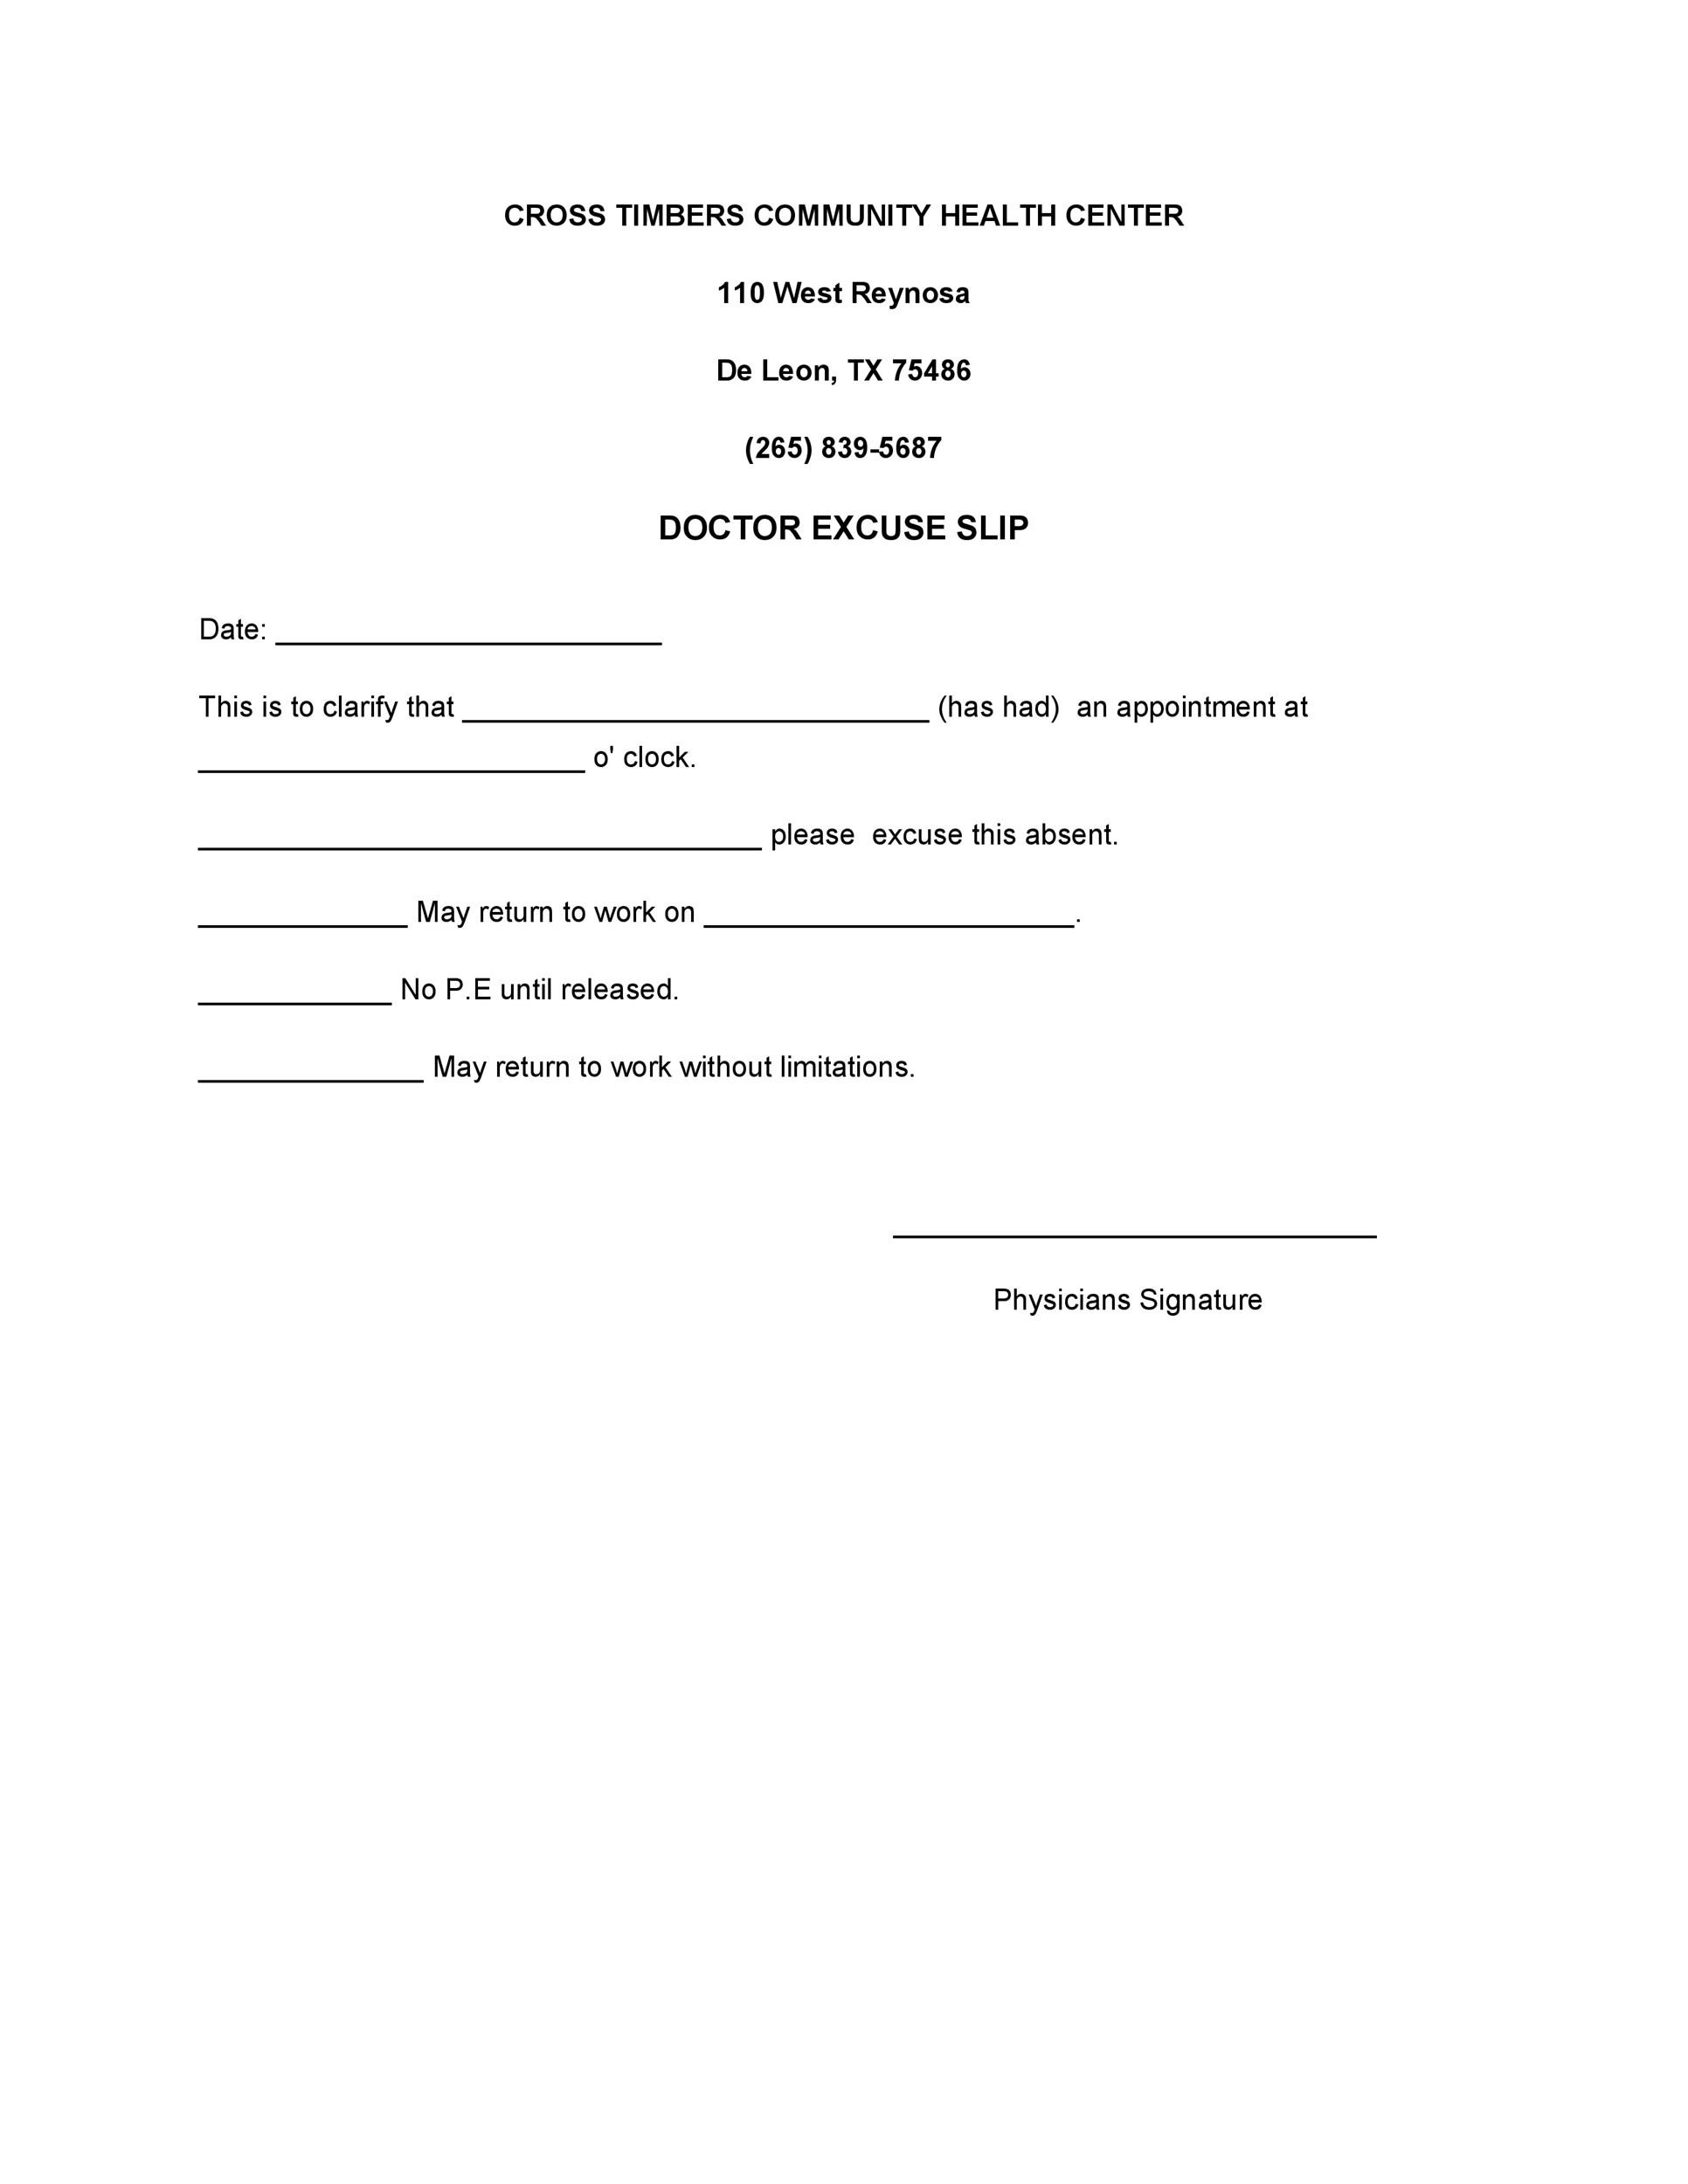 25 free doctor note excuse templates template lab free doctor notes 04 altavistaventures